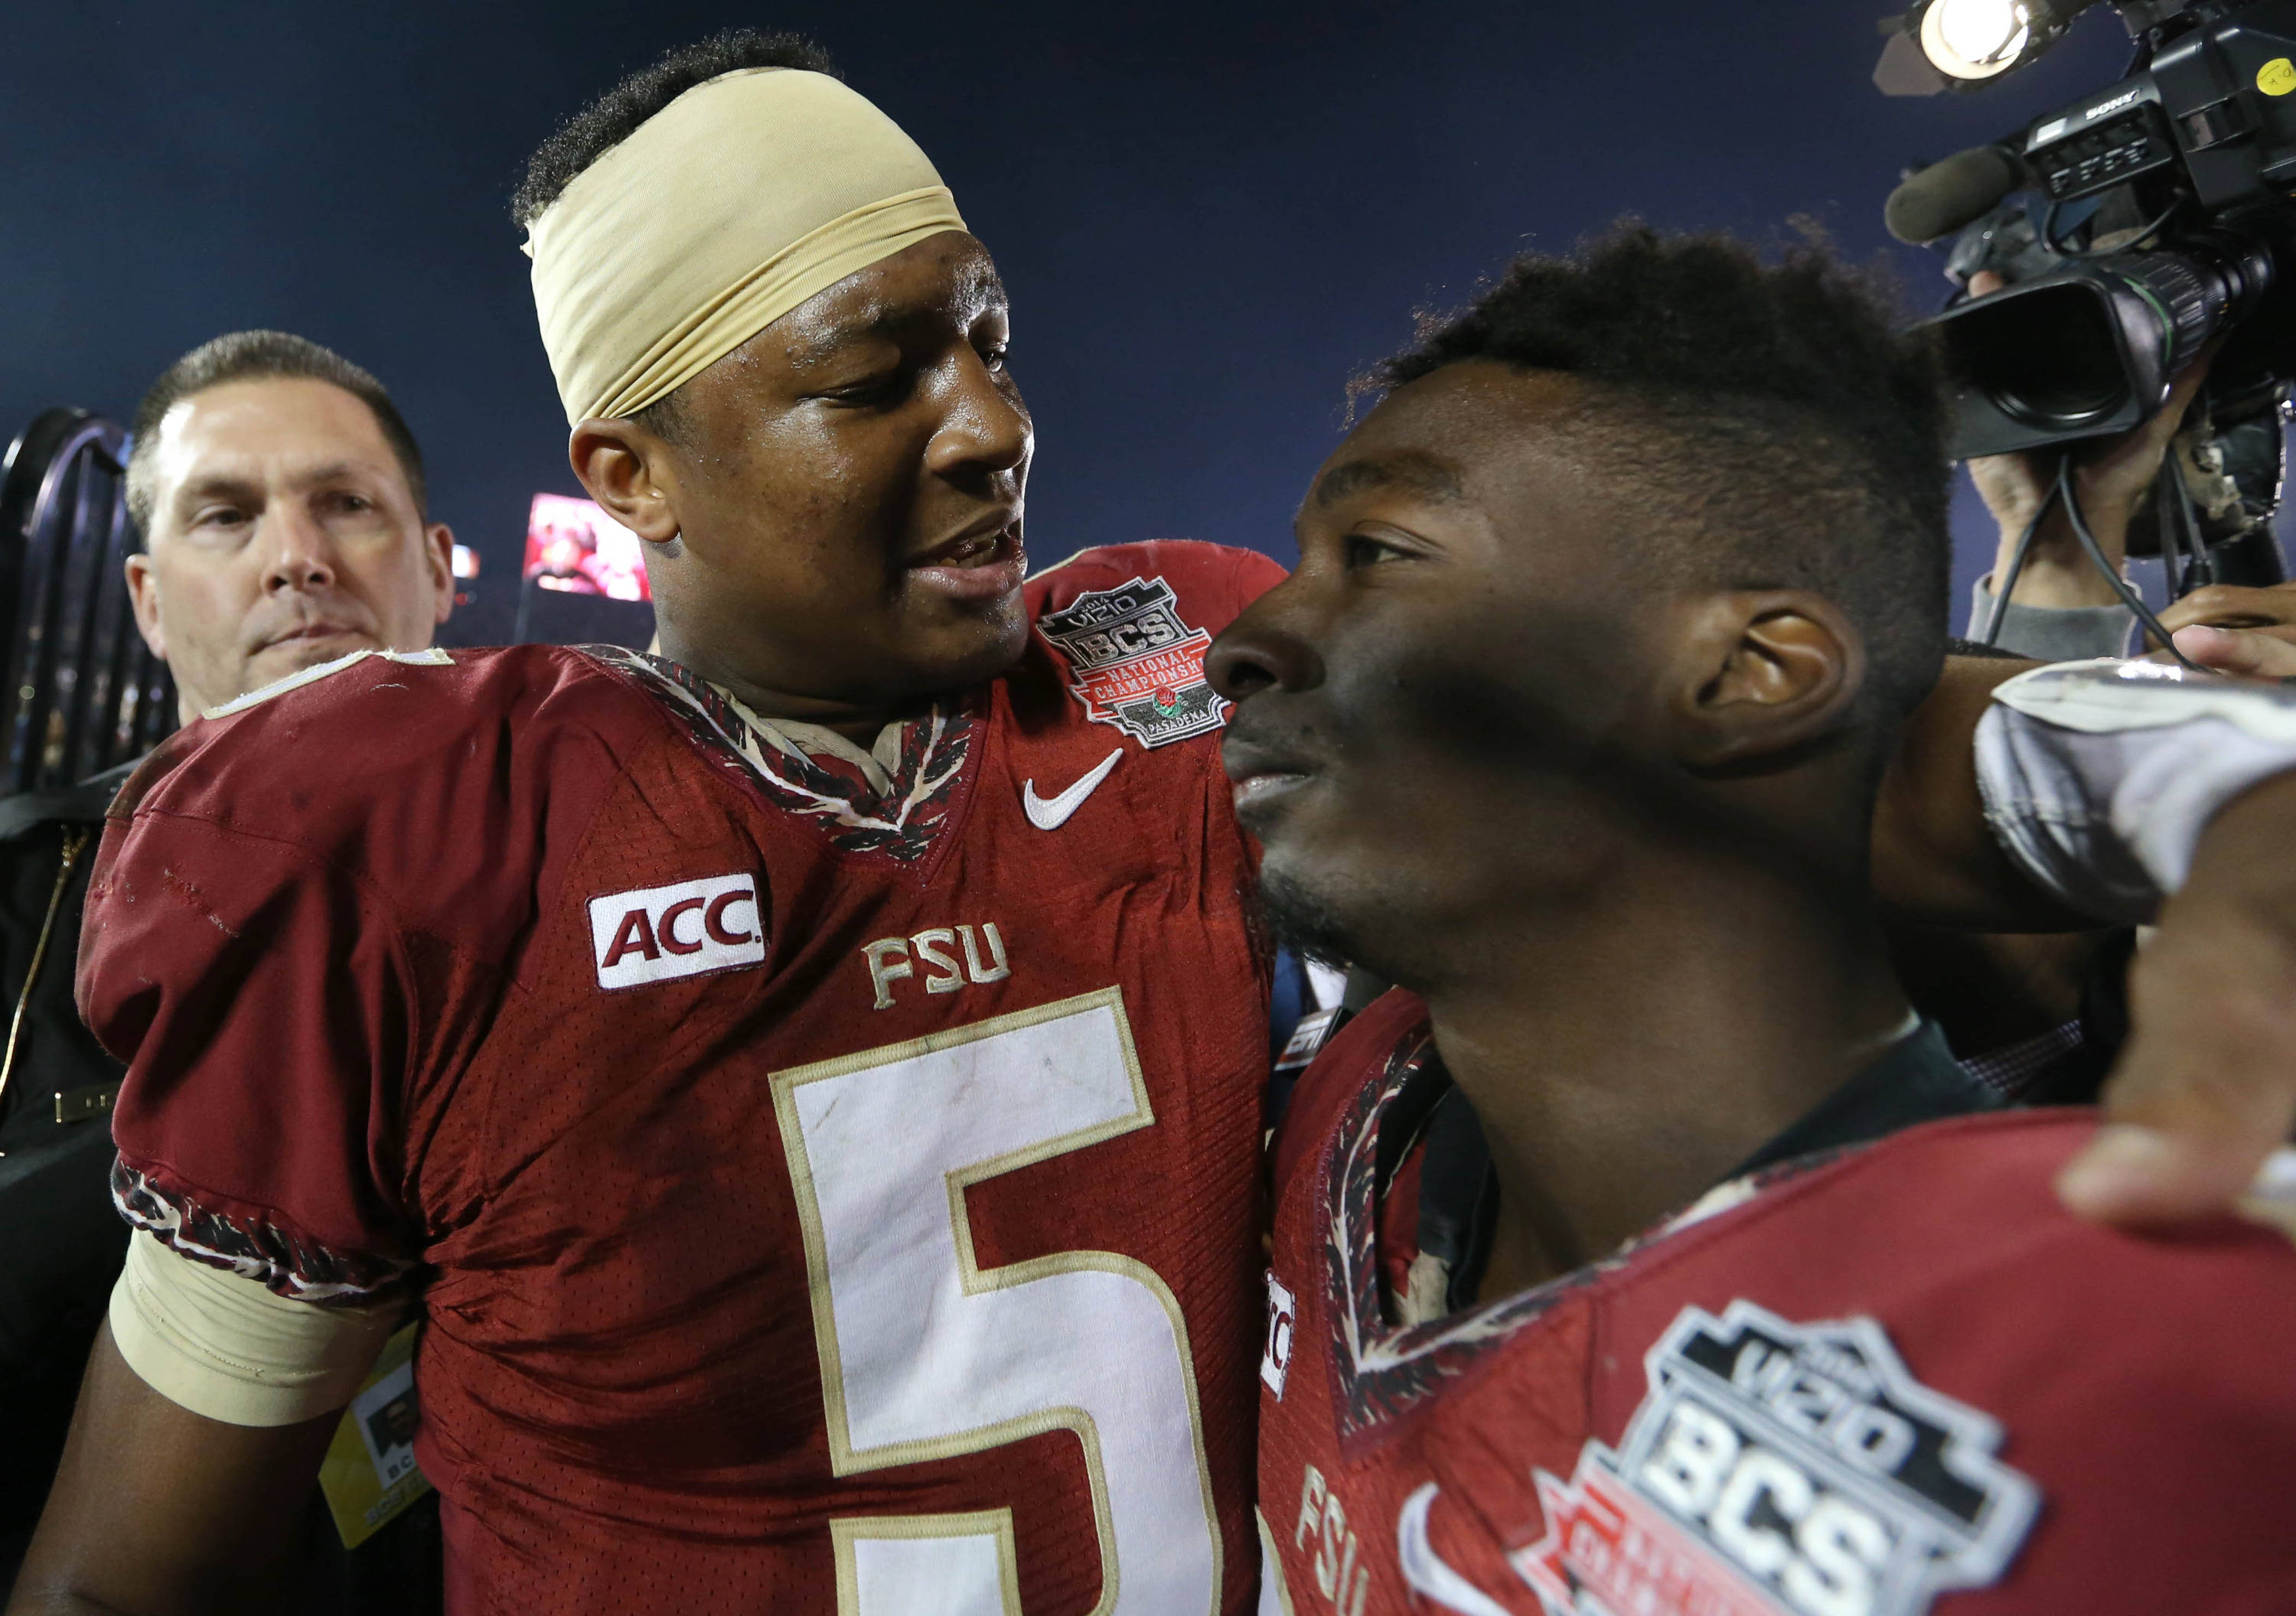 Jan 6, 2014; Pasadena, CA, USA; Florida State Seminoles quarterback Jameis Winston (5) celebrates with Florida State Seminoles wide receiver Kenny Shaw (81) during the second half of the 2014 BCS National Championship game at the Rose Bowl.  Mandatory Credit: Matthew Emmons-USA TODAY Sports